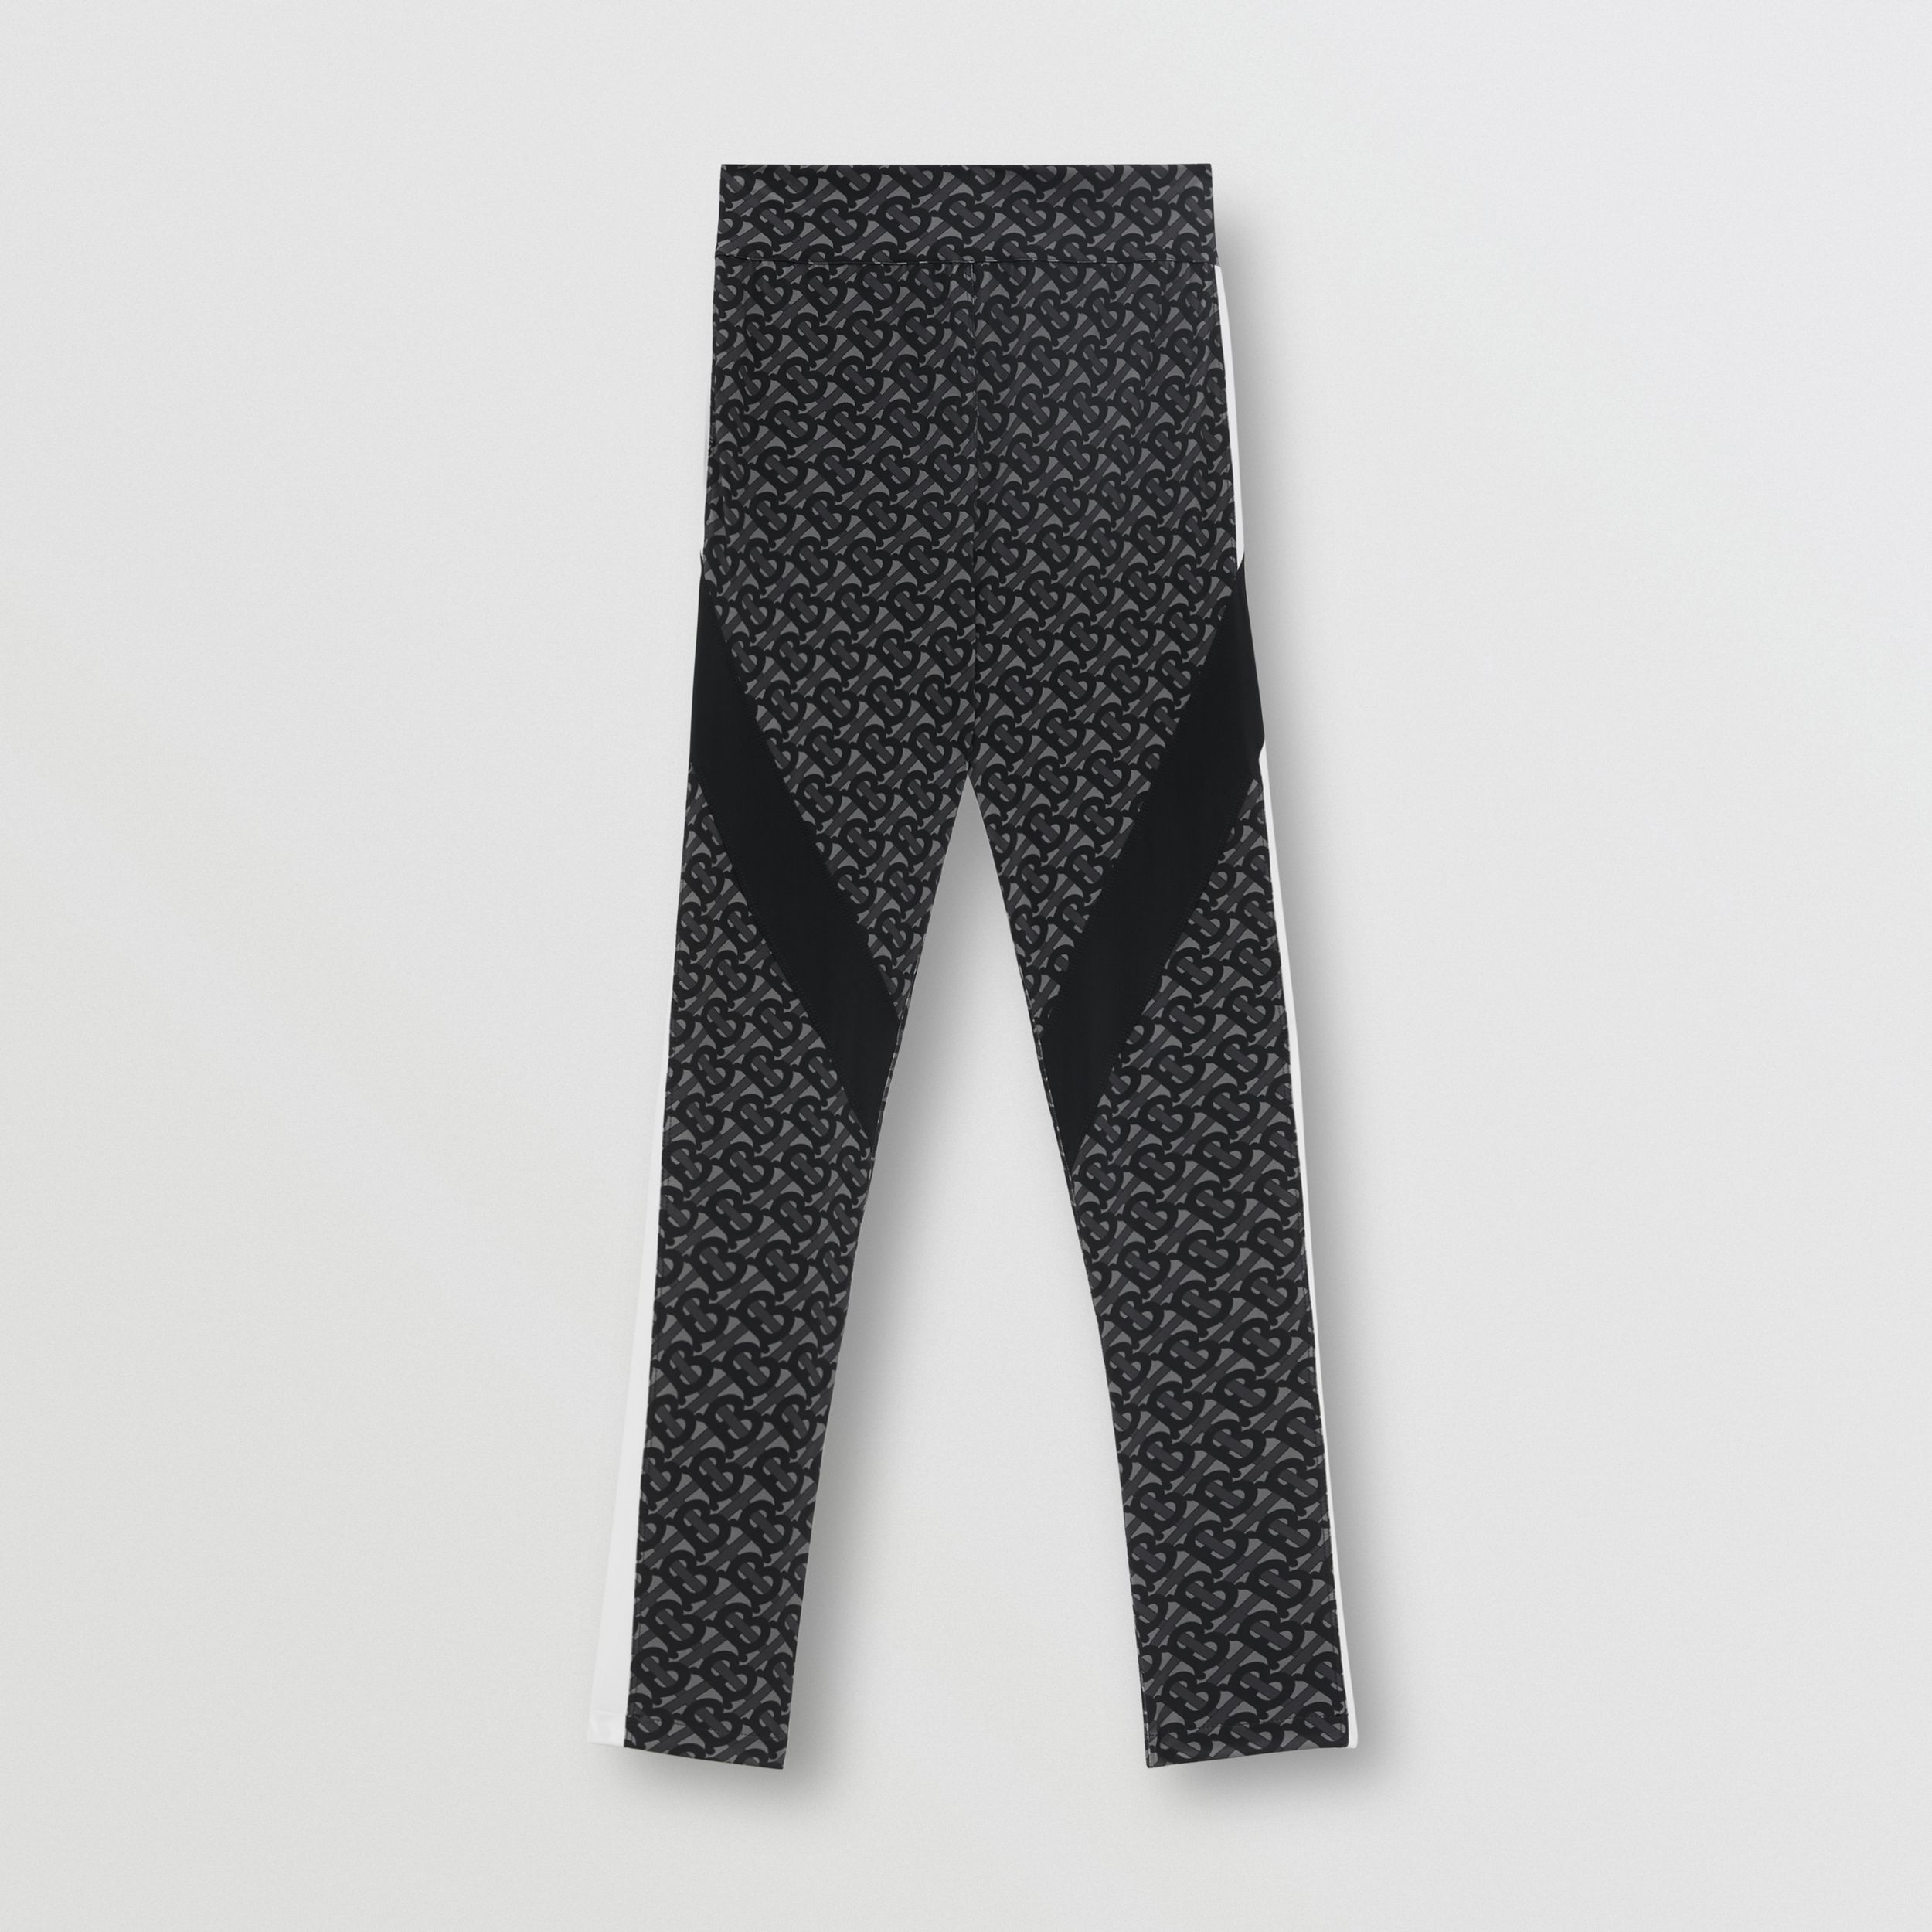 Colour Block Monogram Print Stretch Jersey Leggings in Graphite - Women | Burberry Australia - 4